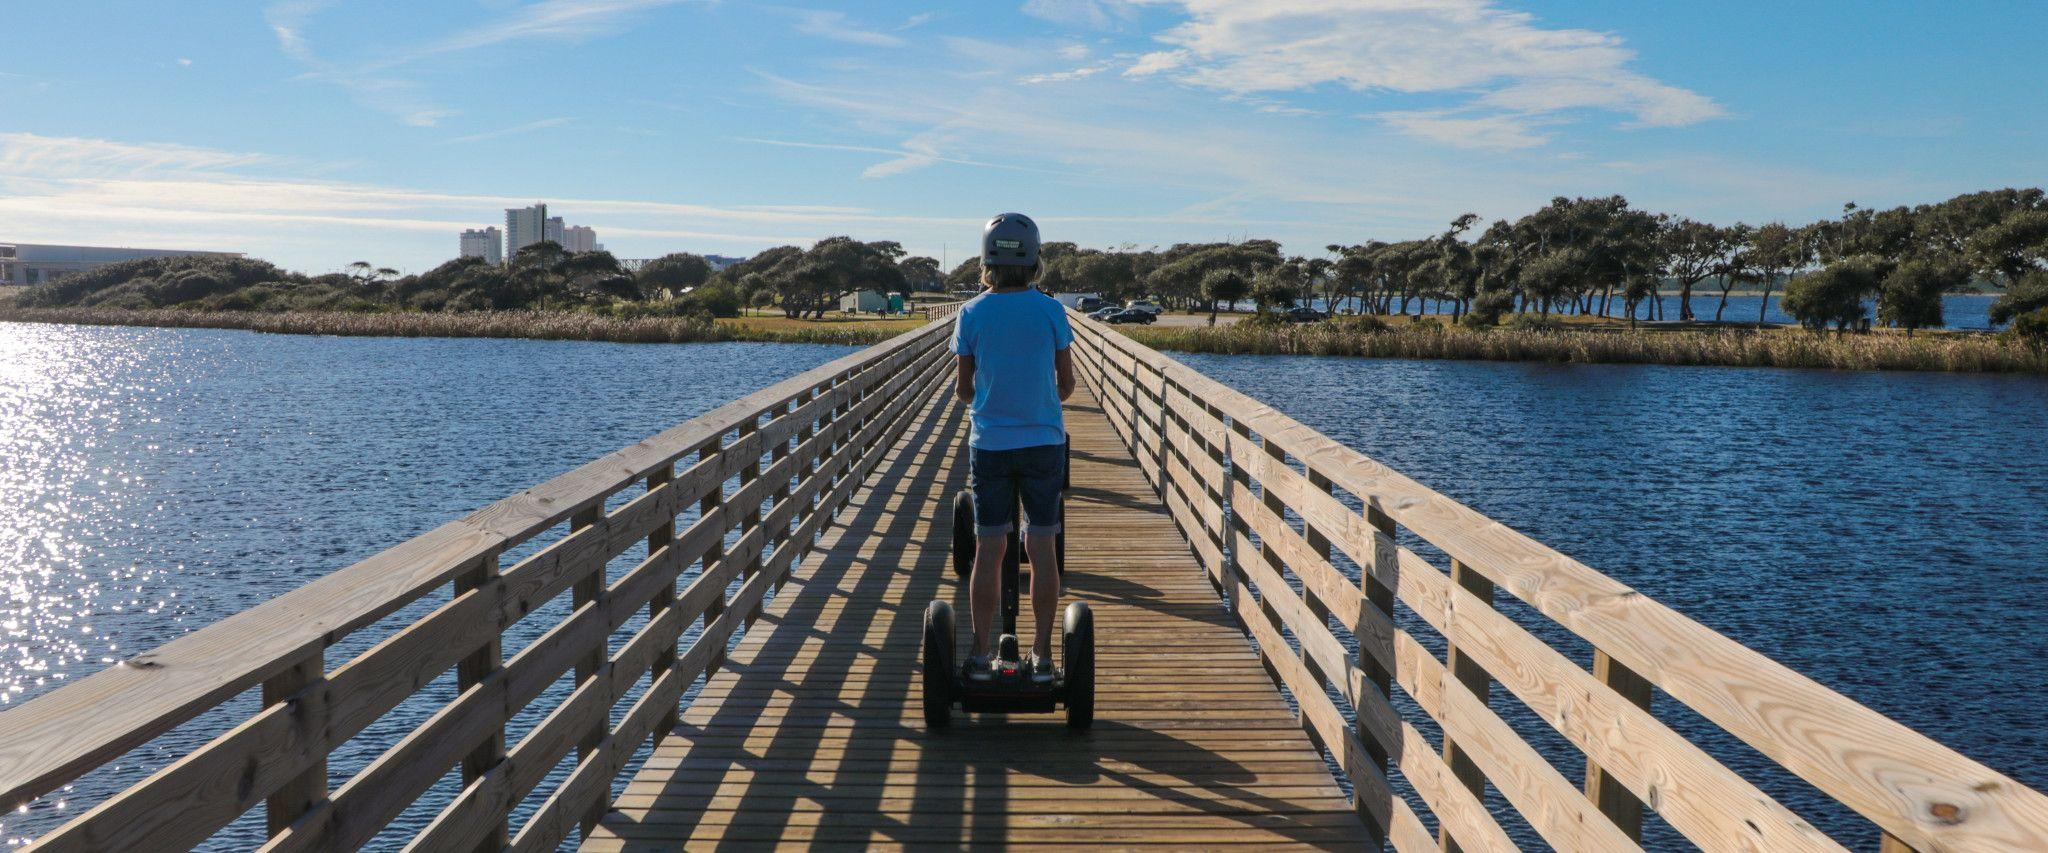 Segway at Gulf State Park Gulf Shores AL